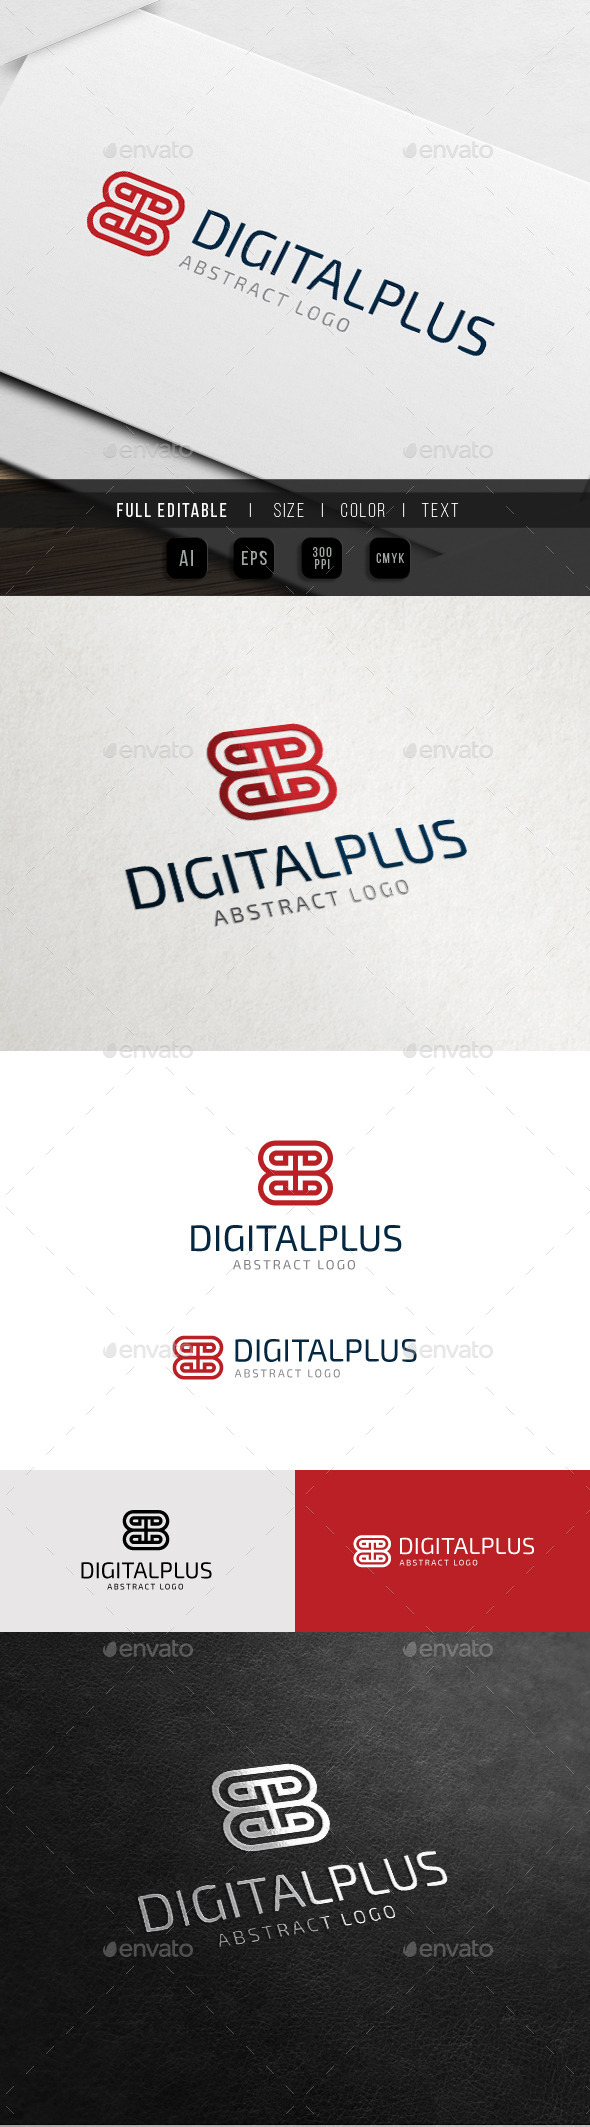 GraphicRiver Abstract Plus Digital Positive D Hotel 10761723